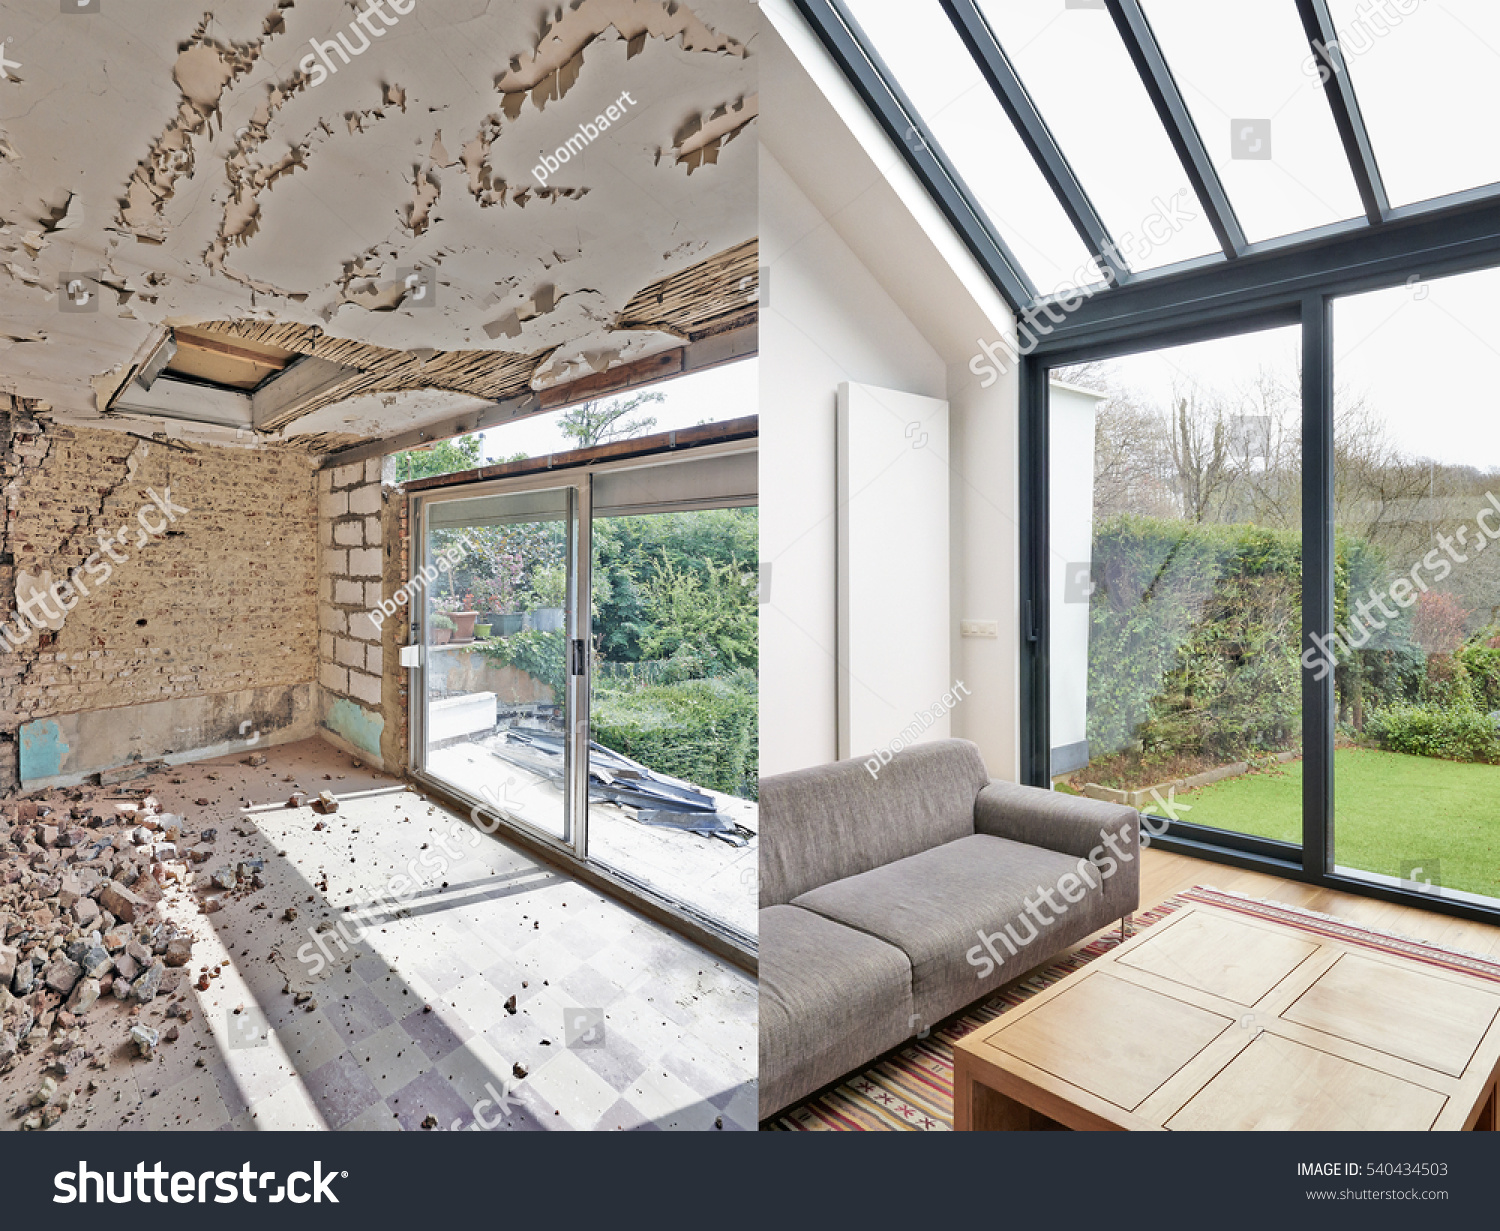 stock-photo-modern-living-room-with-large-windows-and-view-on-seaside-before-and-after-540434503